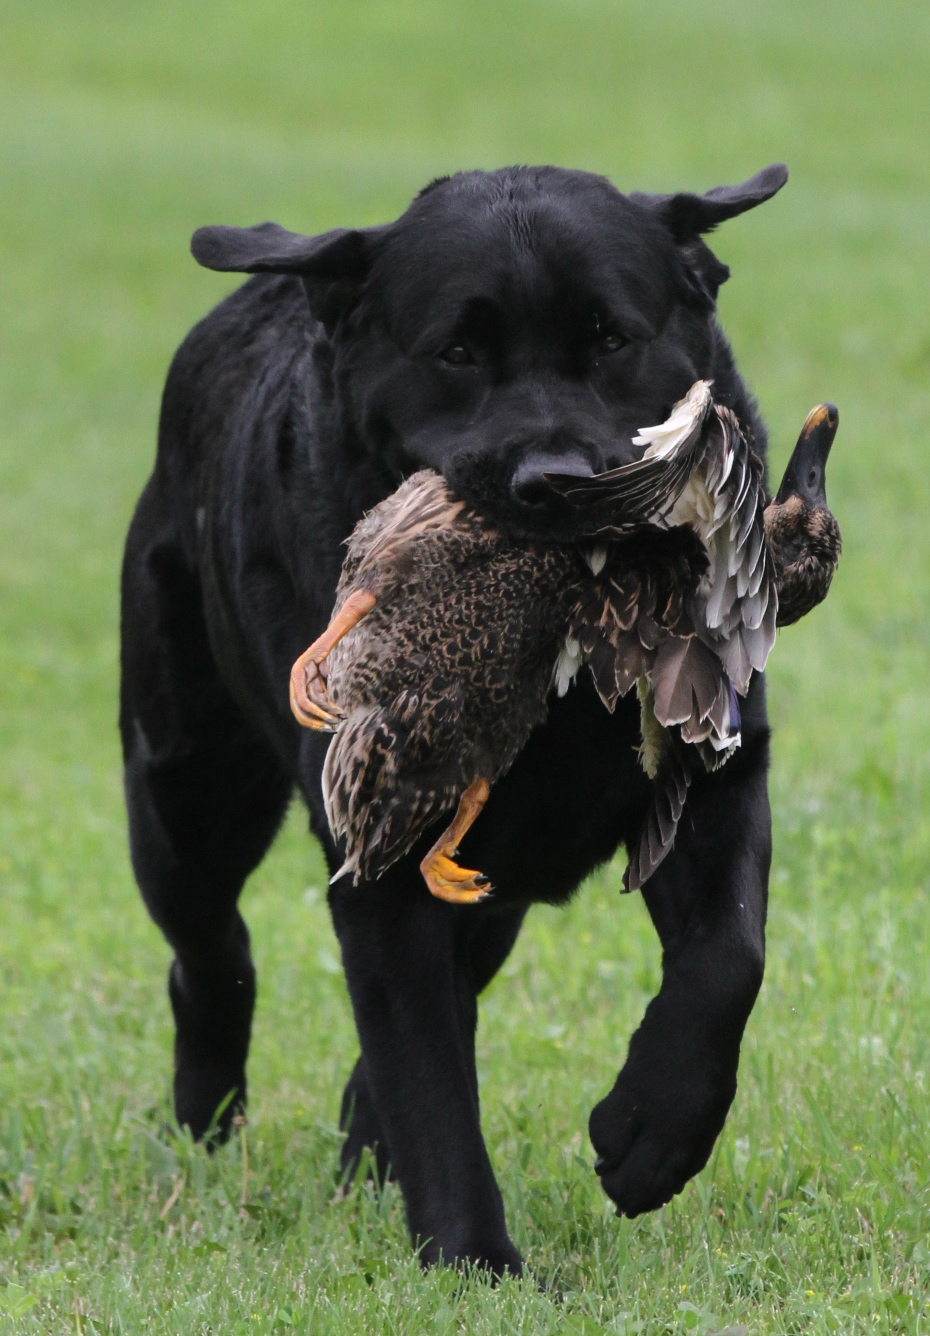 vito with duck up close 2013.jpg